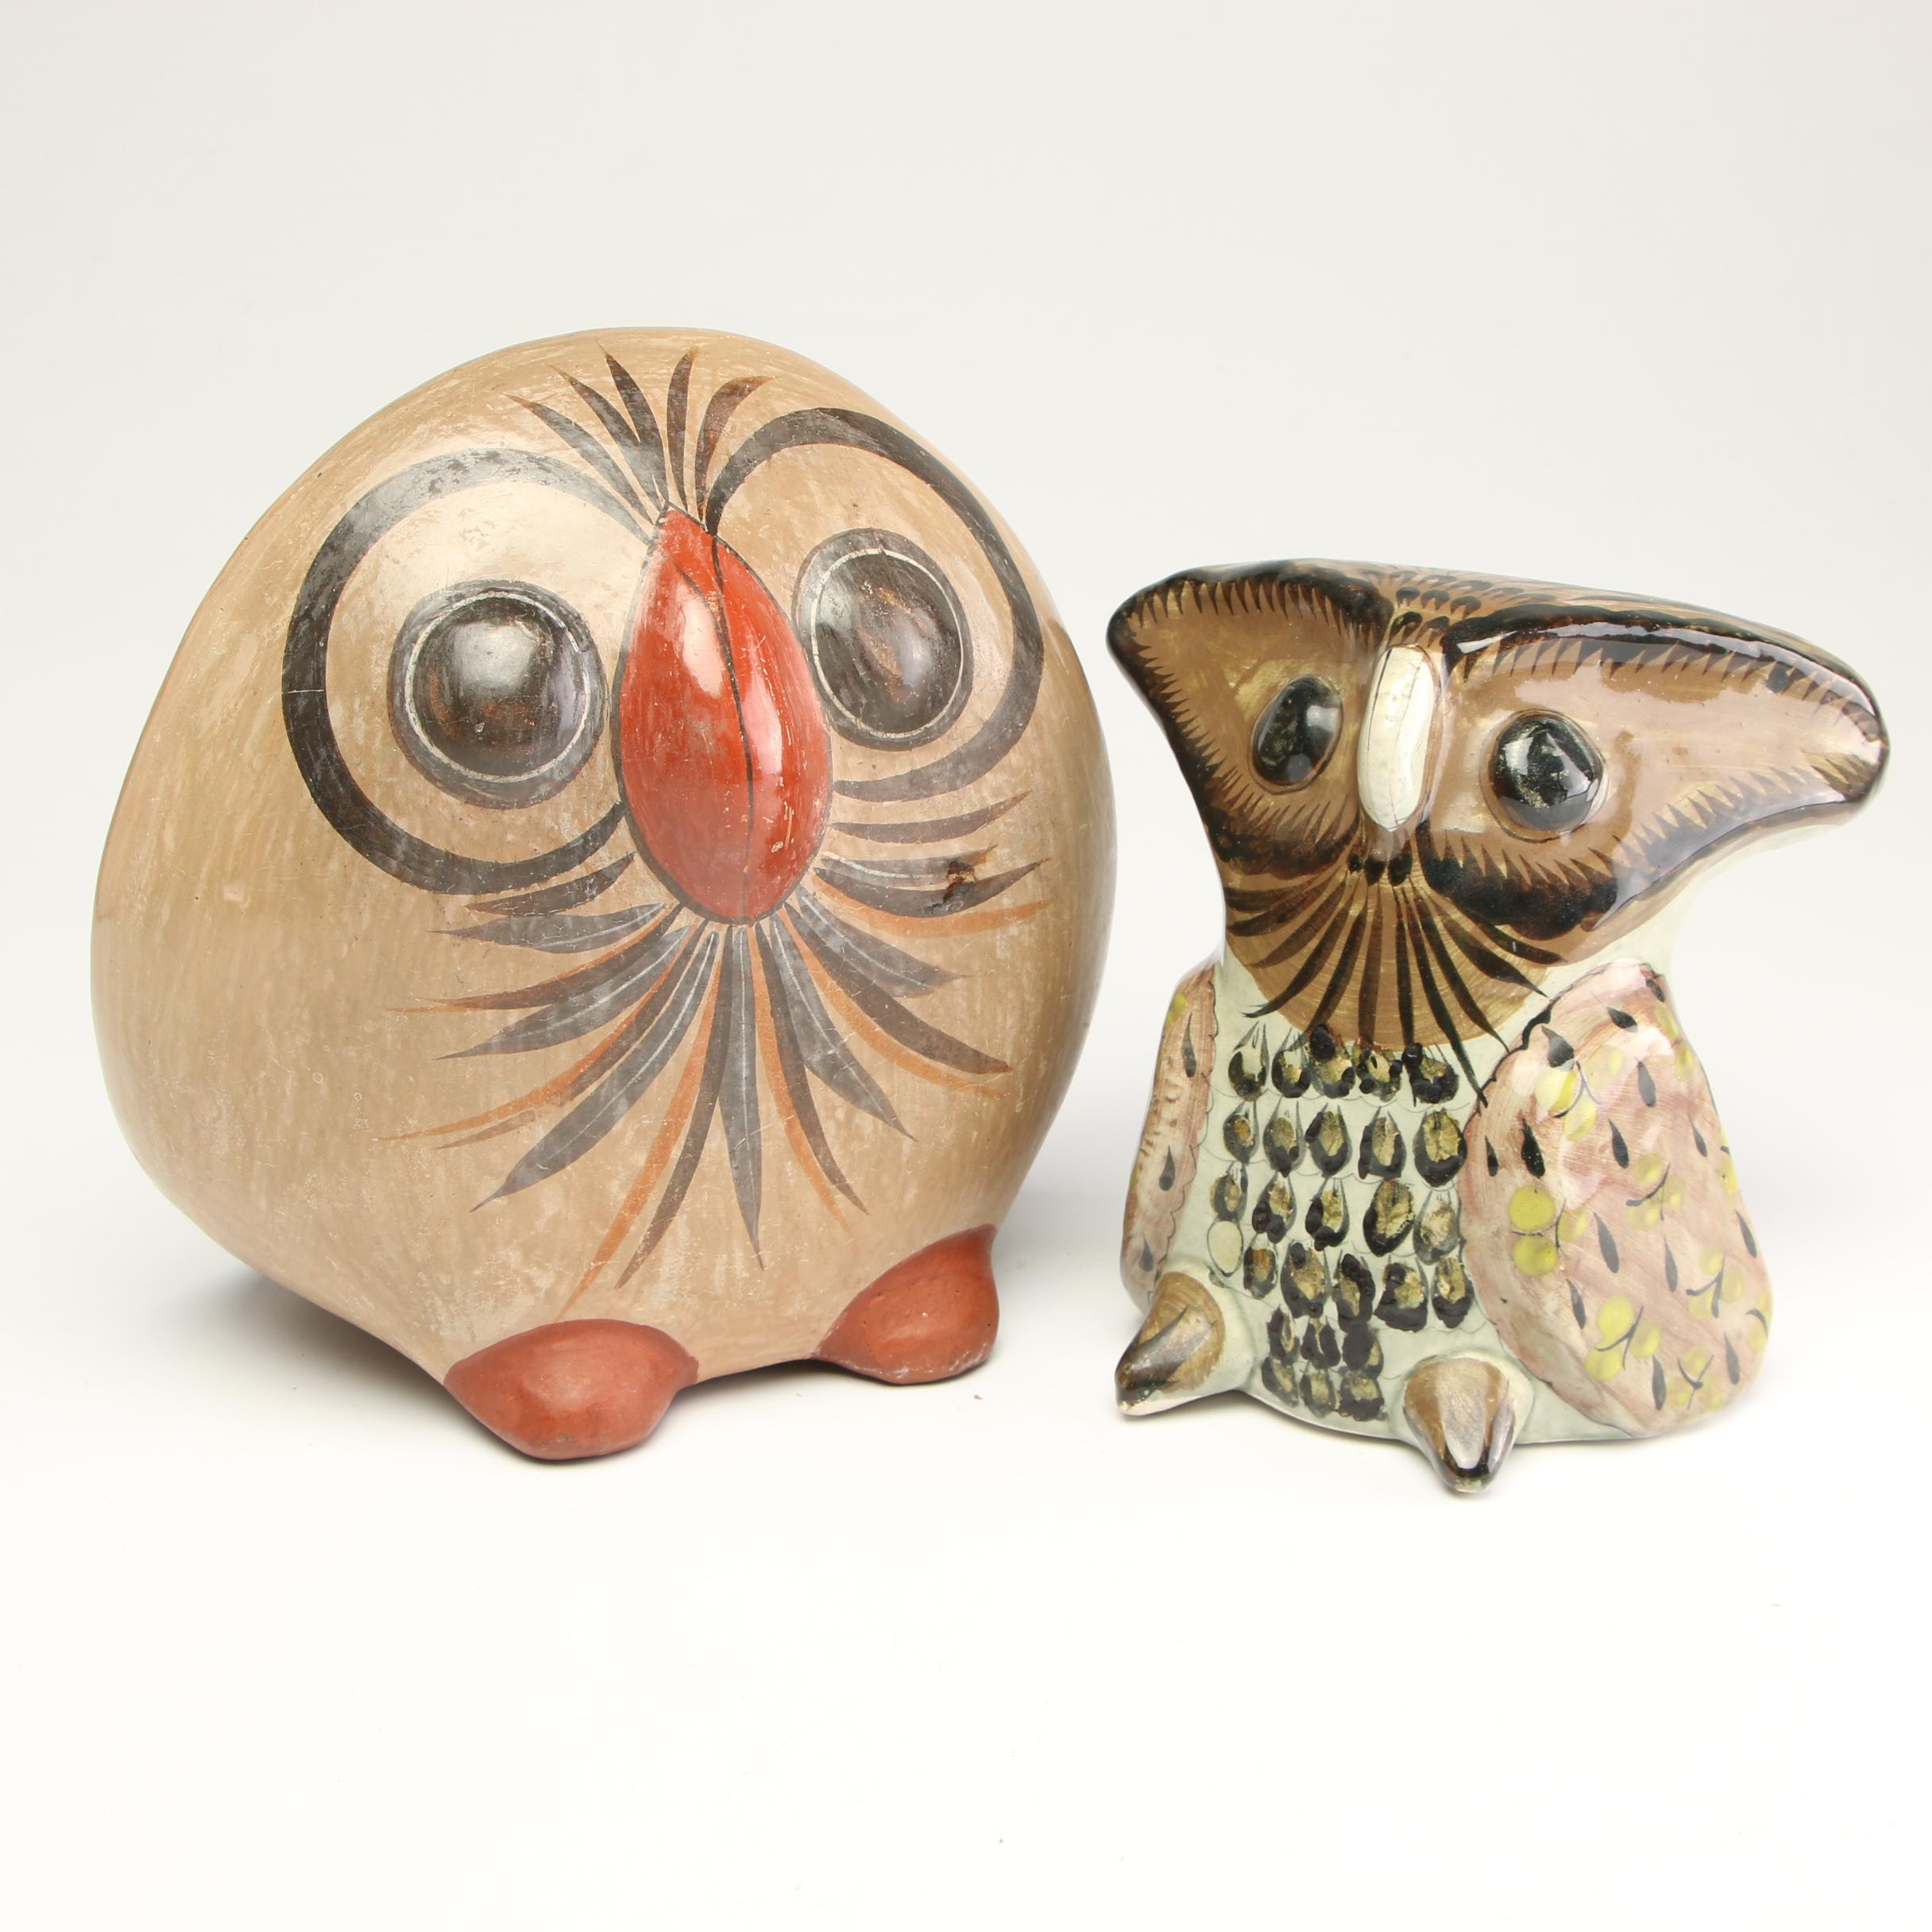 Mexican Ceramic Owl Figurines, Mid 20th Century